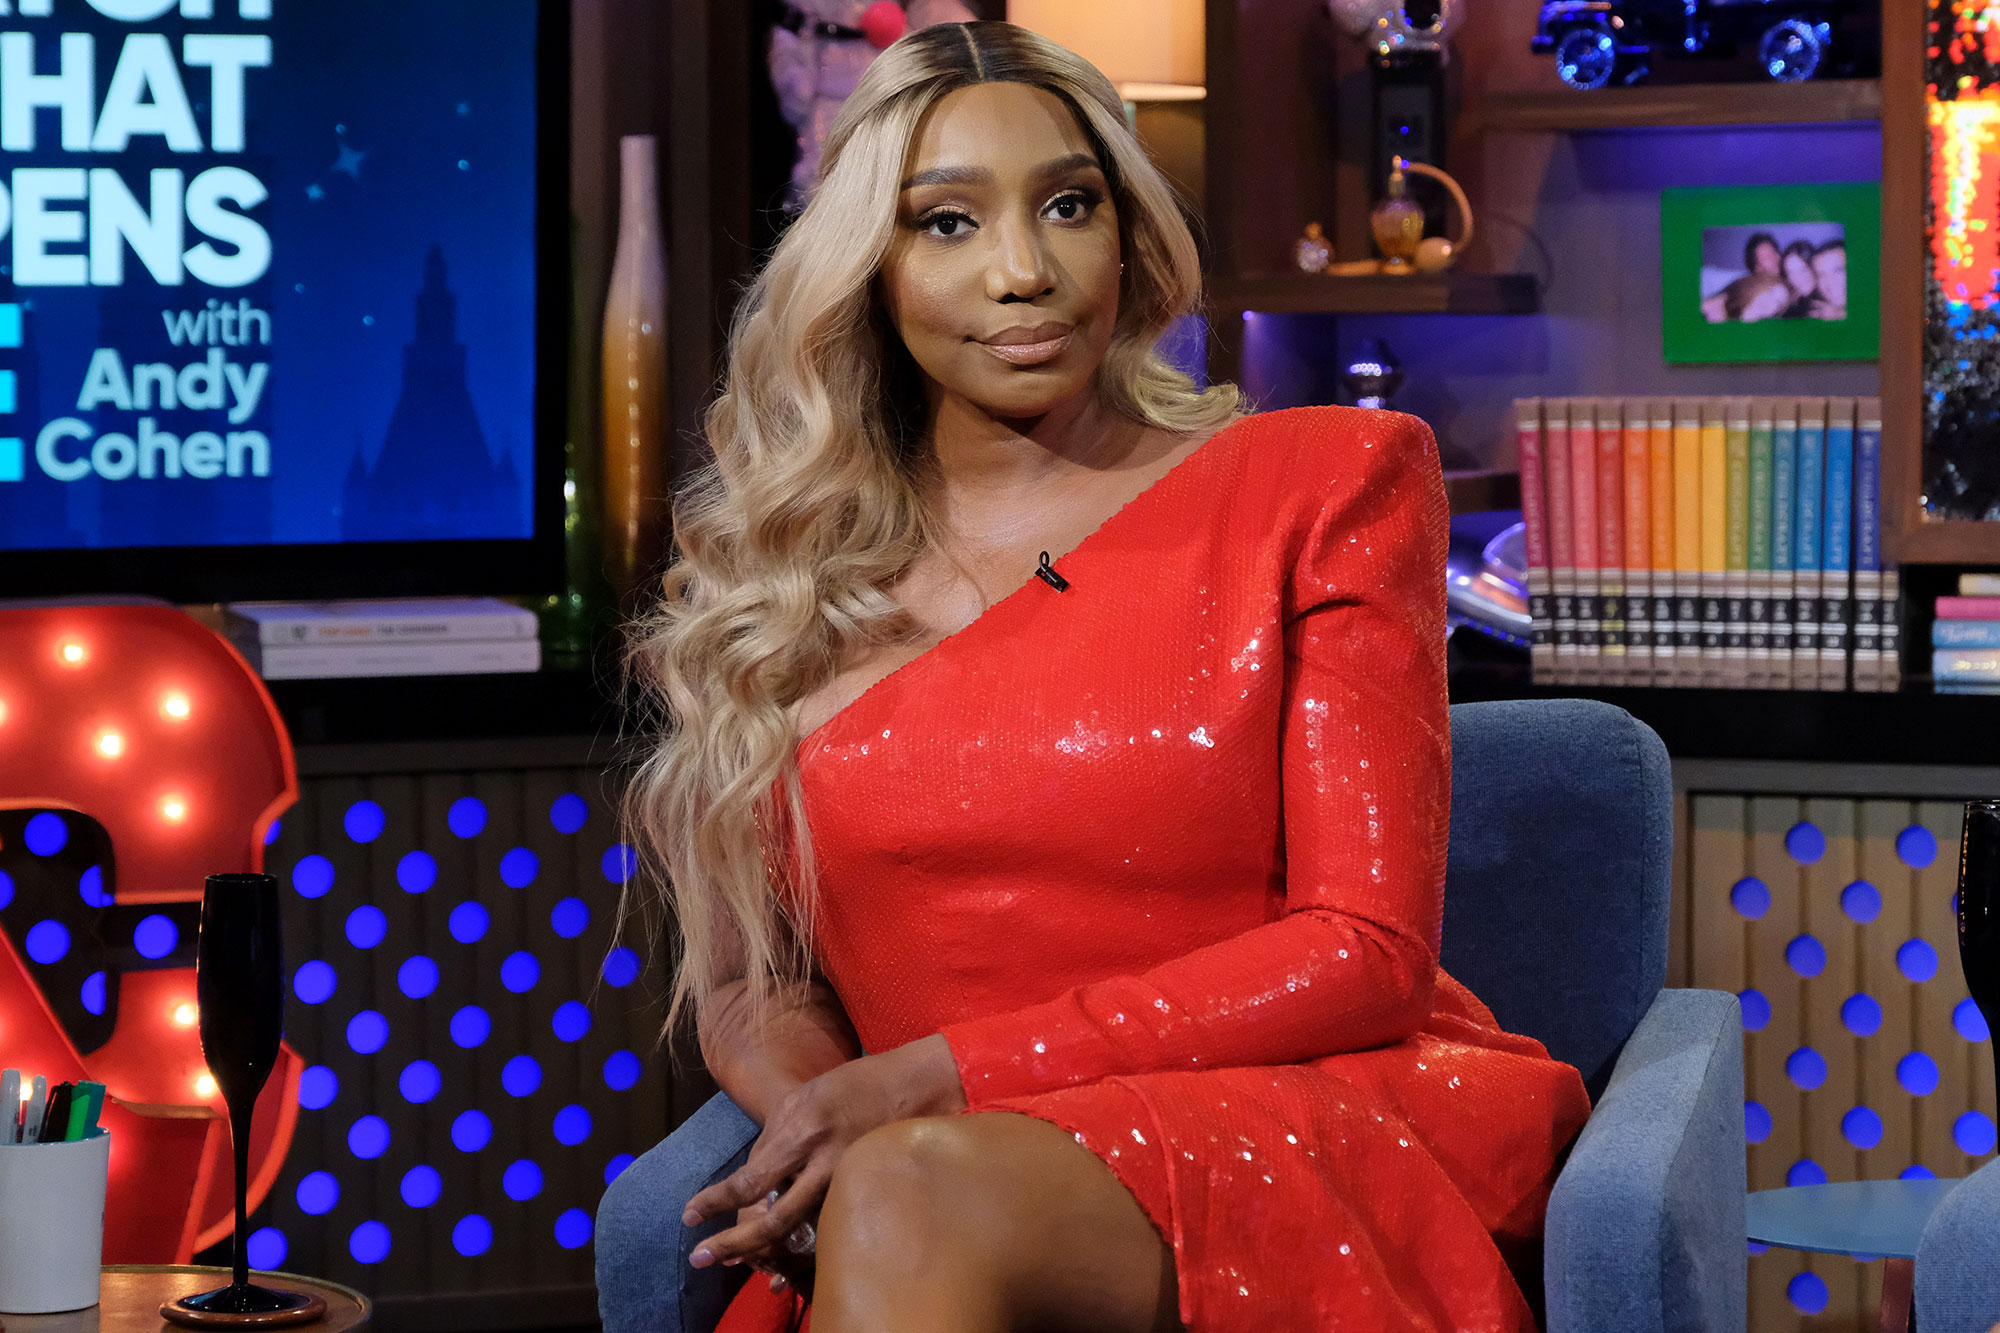 nene-leakes-updates-supporters-on-her-progress-following-gregg-leakes-death-fans-say-she-looks-unrecognizable